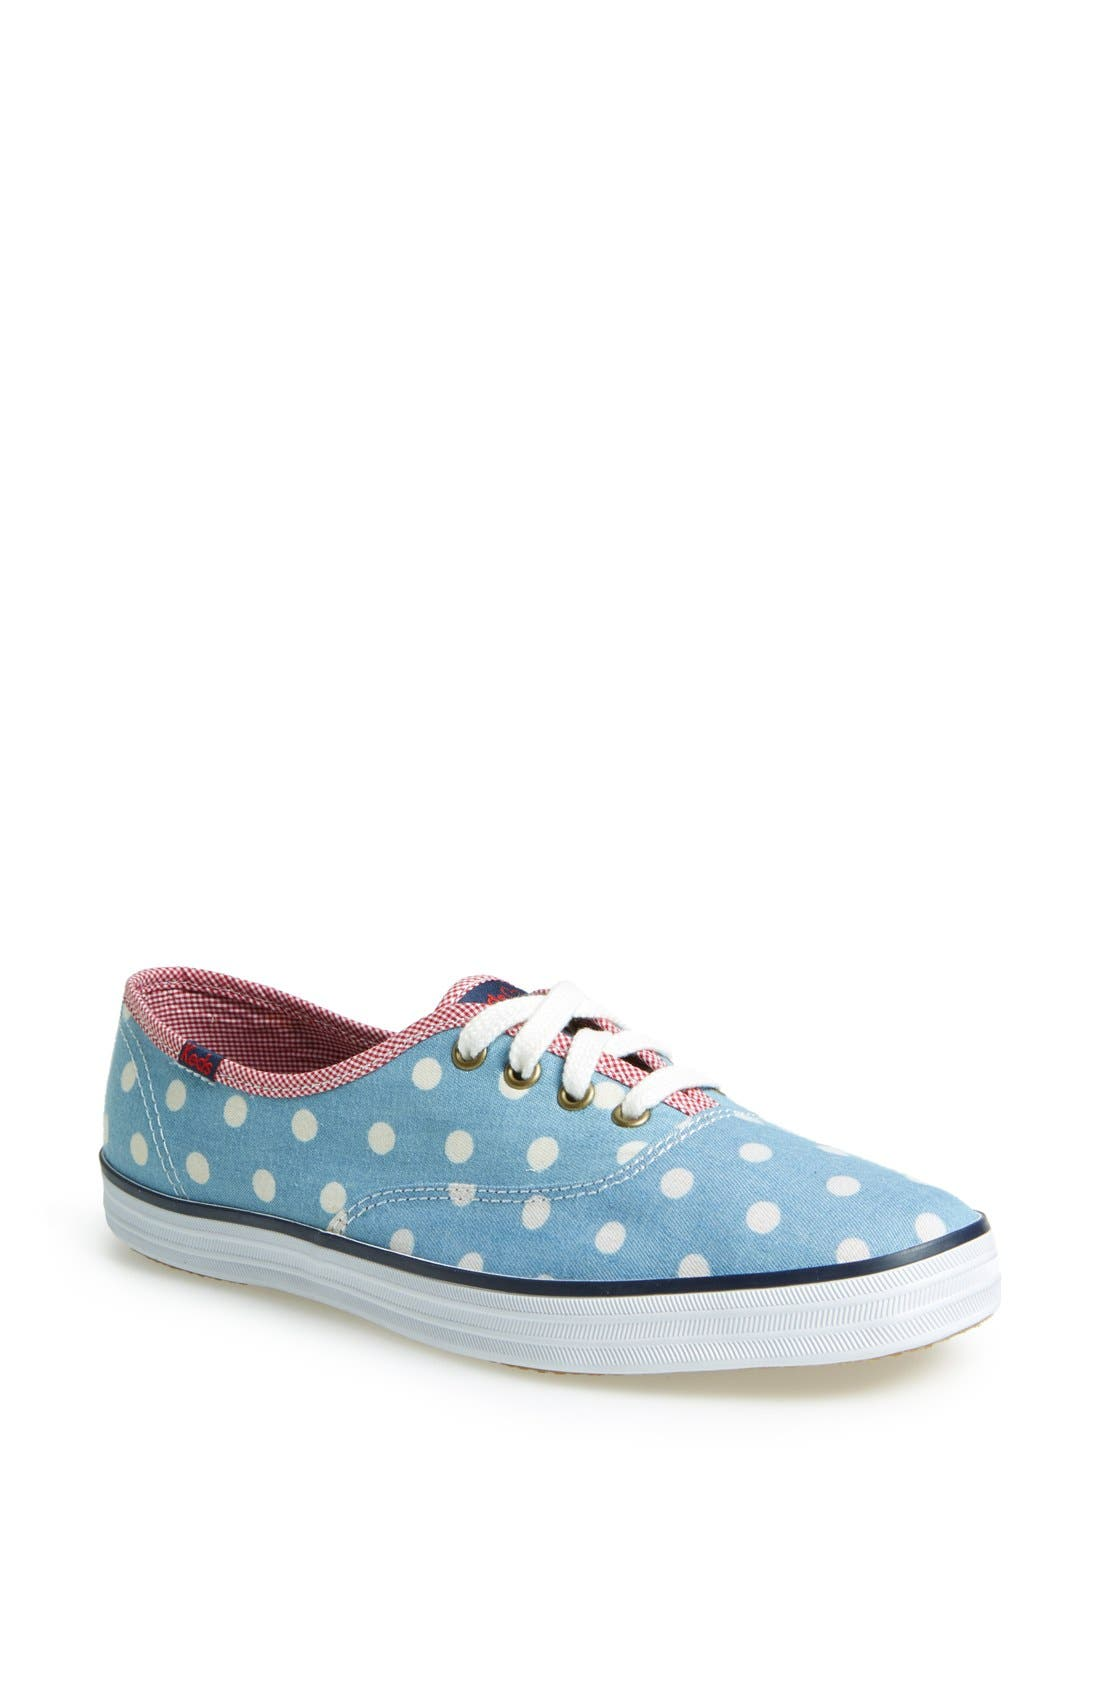 Alternate Image 1 Selected - Keds® Taylor Swift 'Champion Polka Dot' Sneaker (Women)